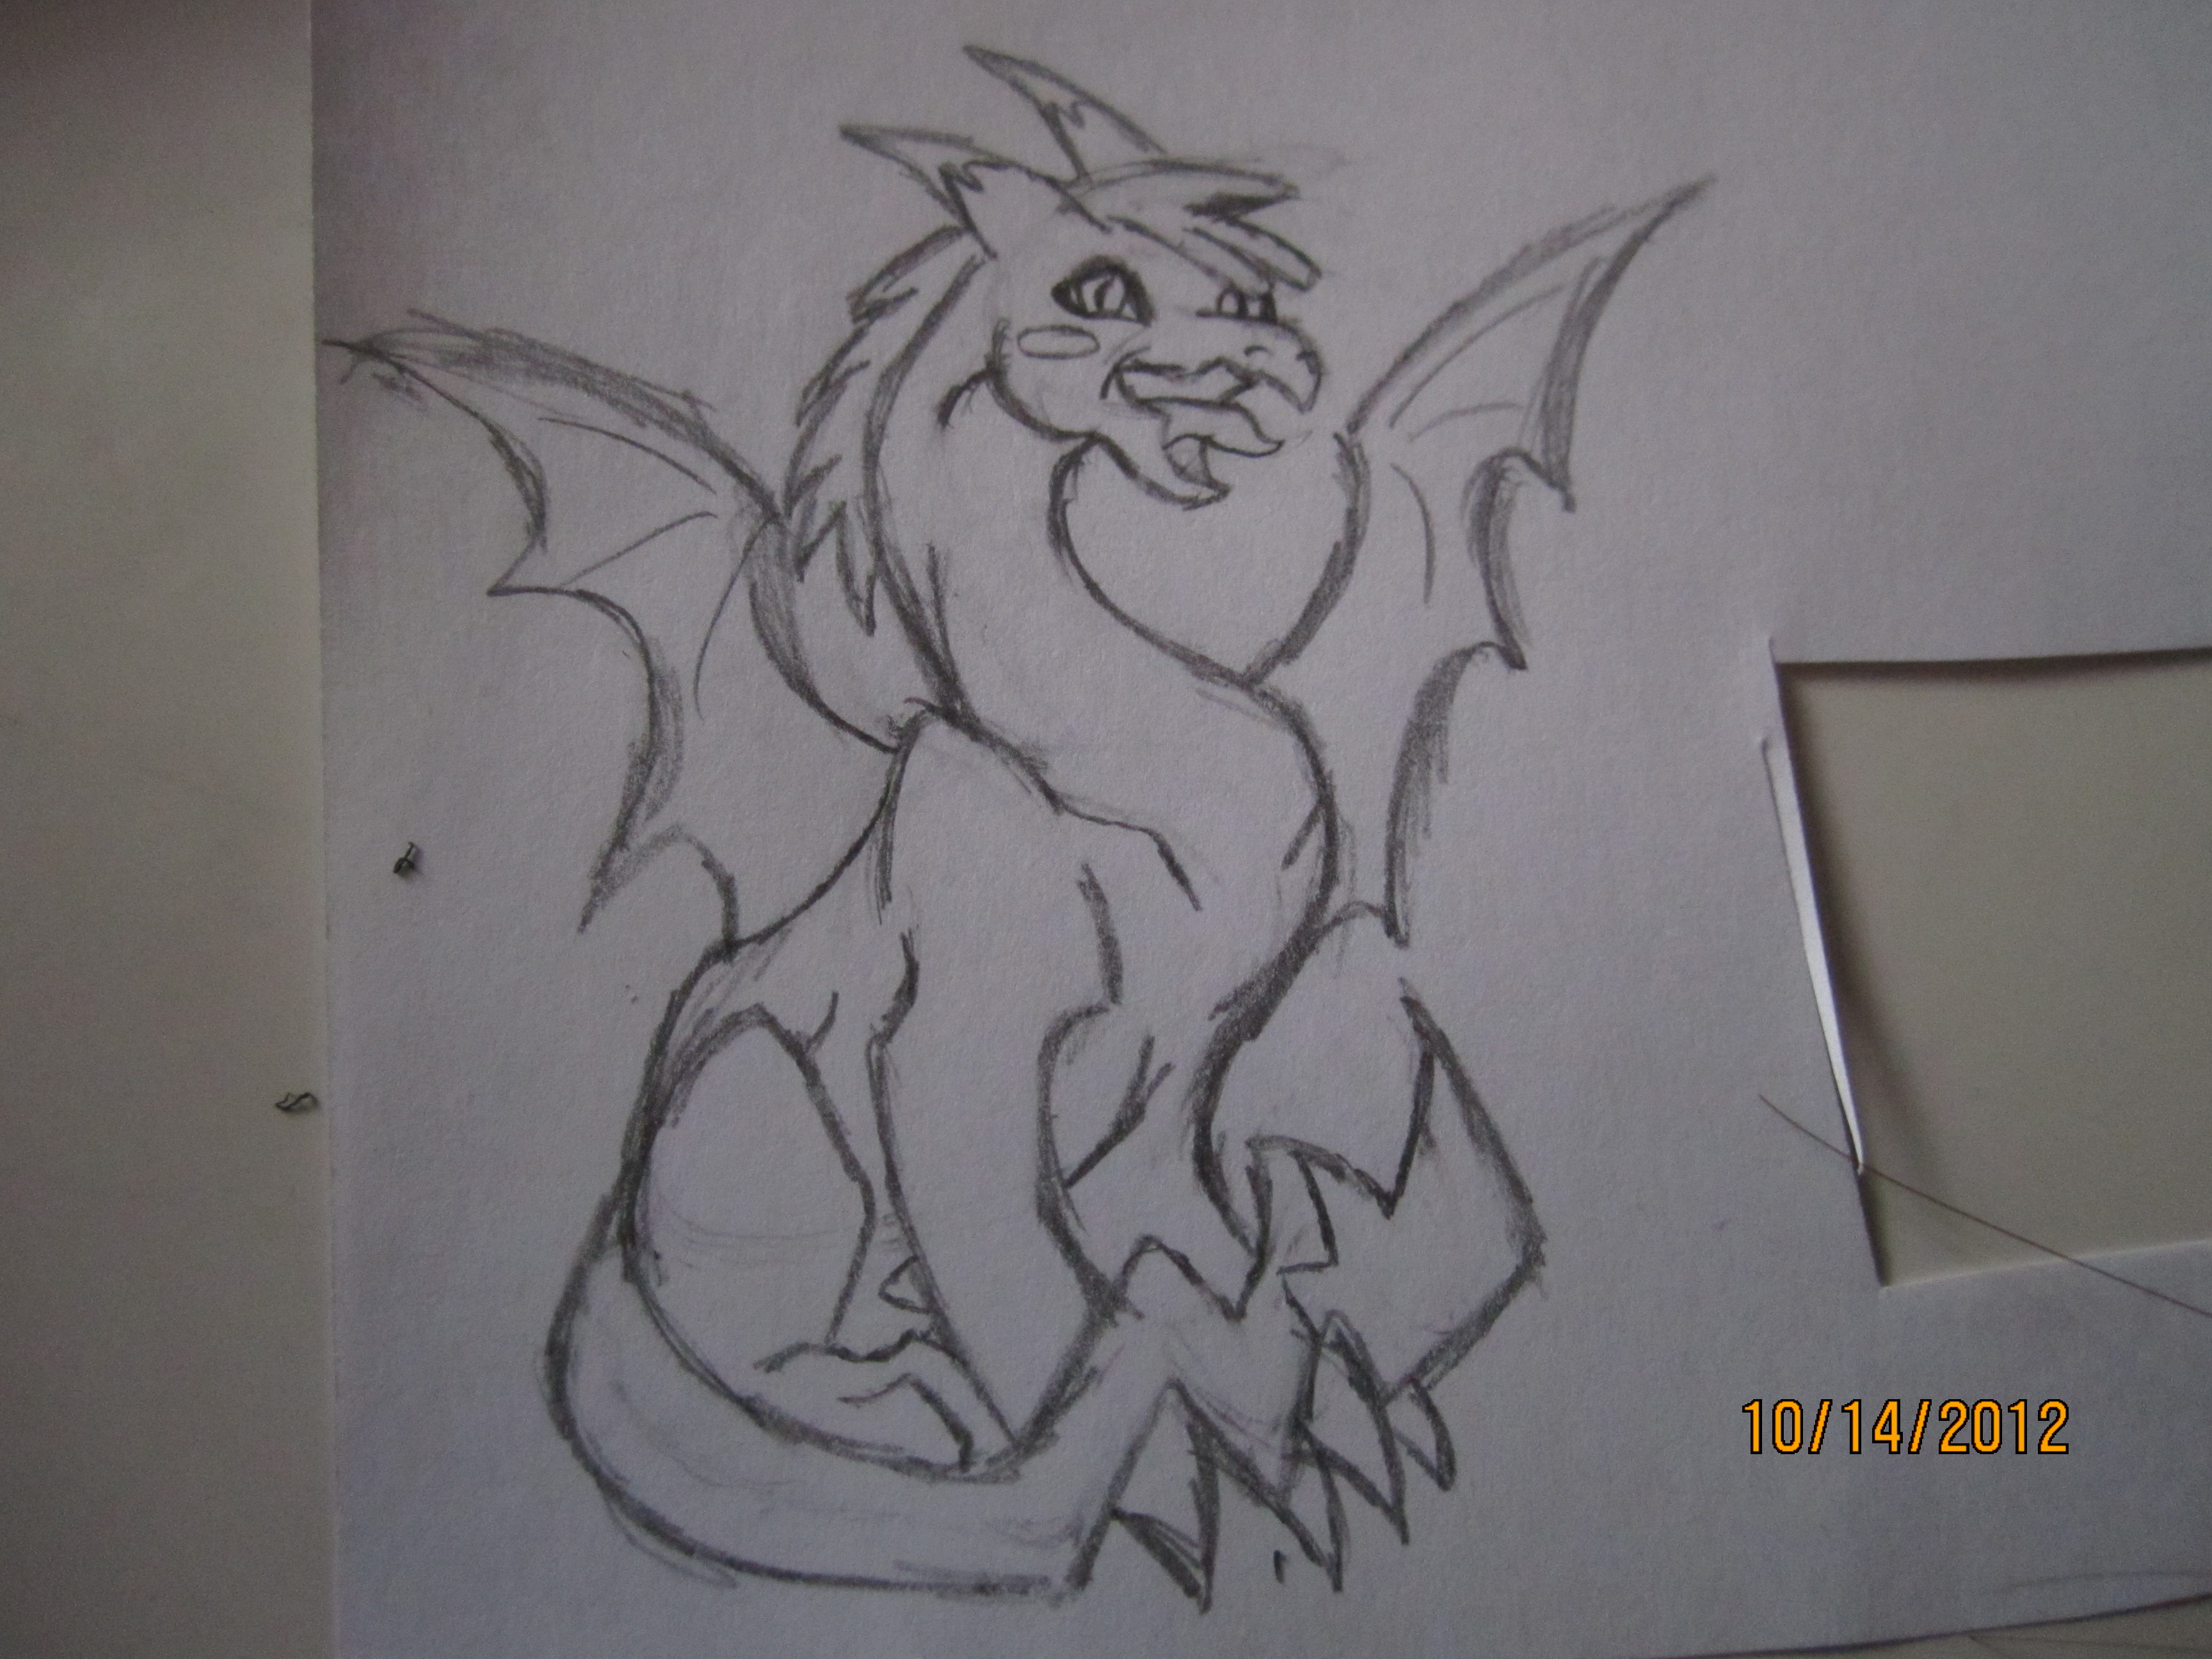 Drawn pikachu dragon Asian to Here a have